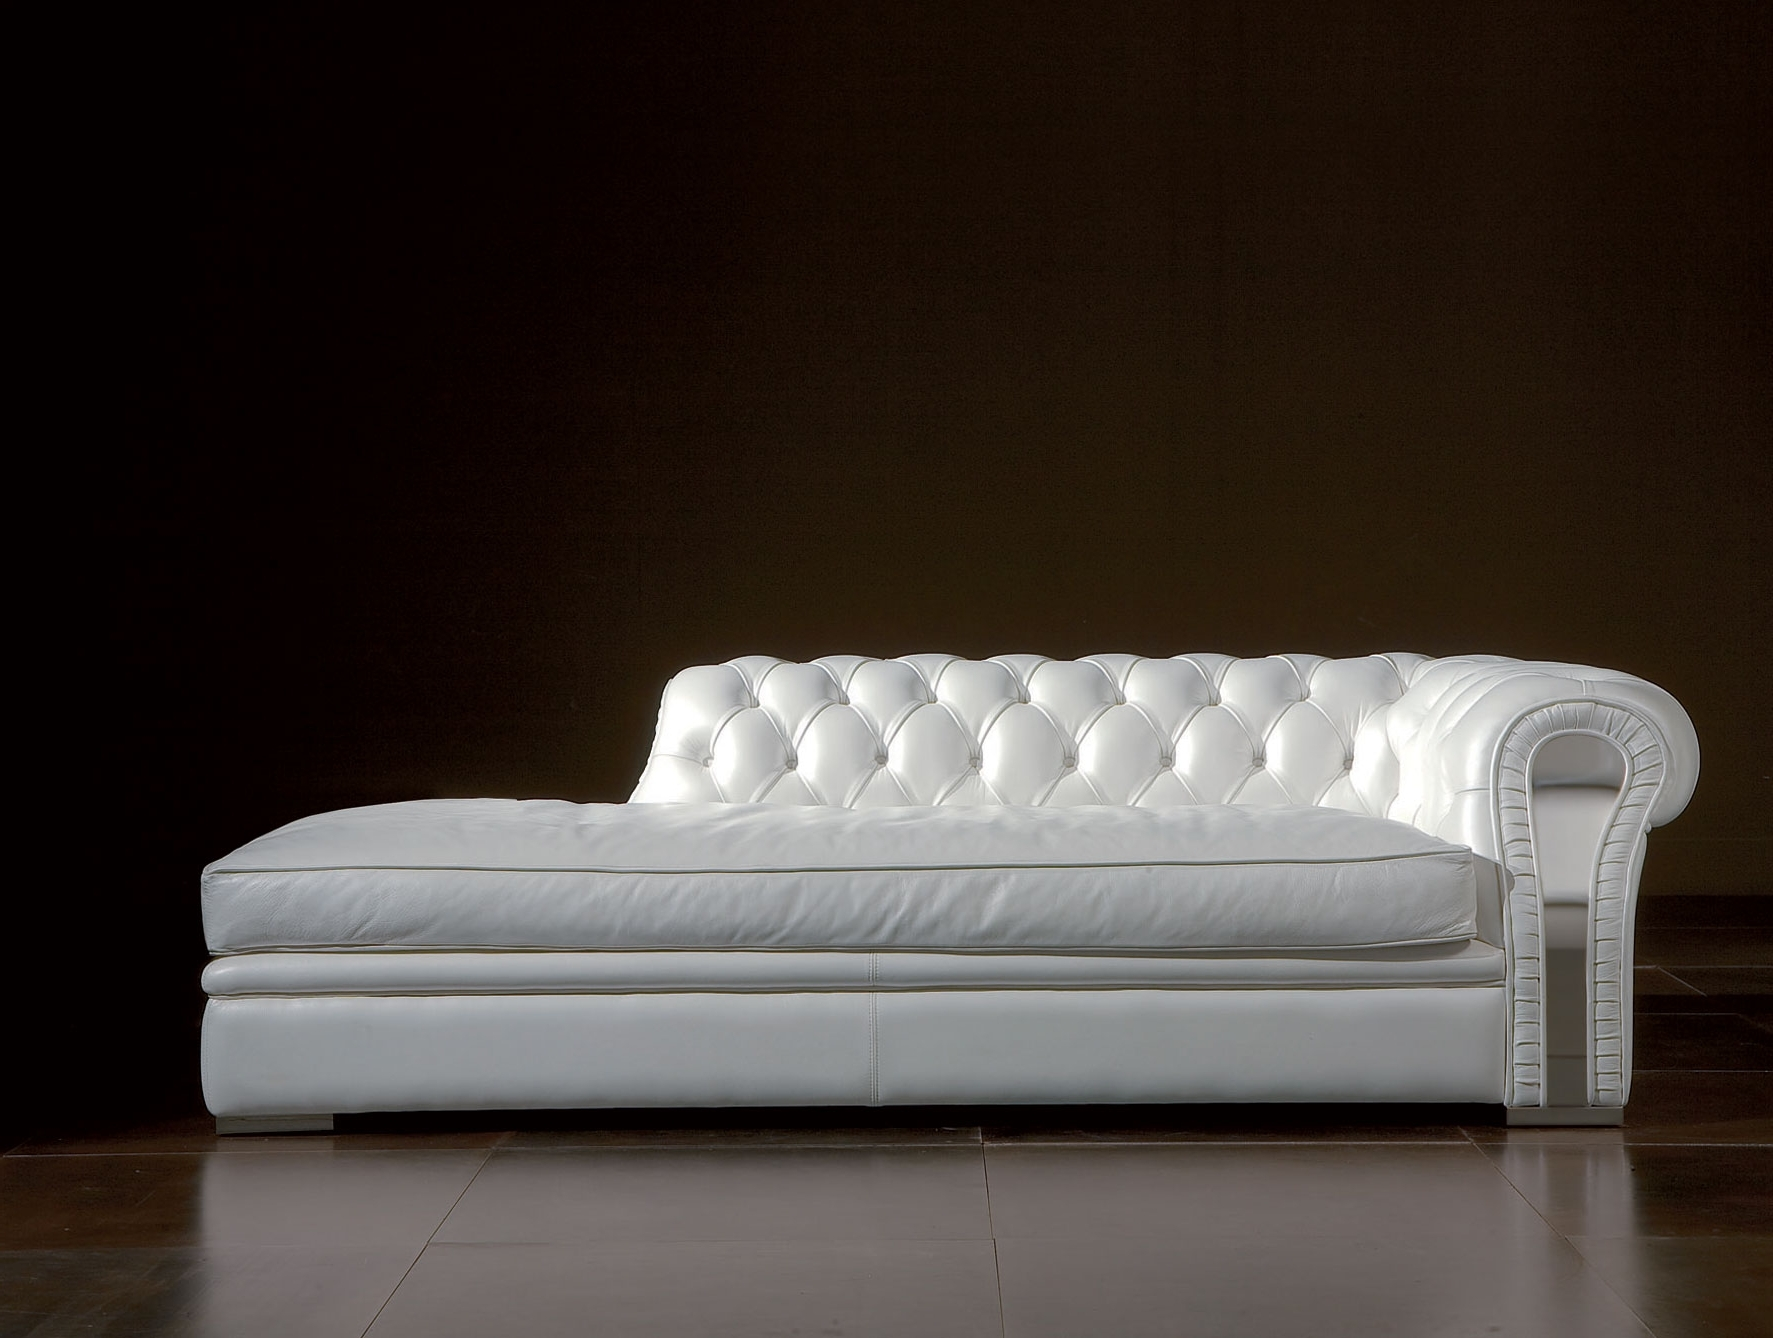 White Leather Chaise Lounges Pertaining To Most Popular Long White Leather Sofa Chaise Lounge With Puffed Headboard Placed (View 6 of 15)